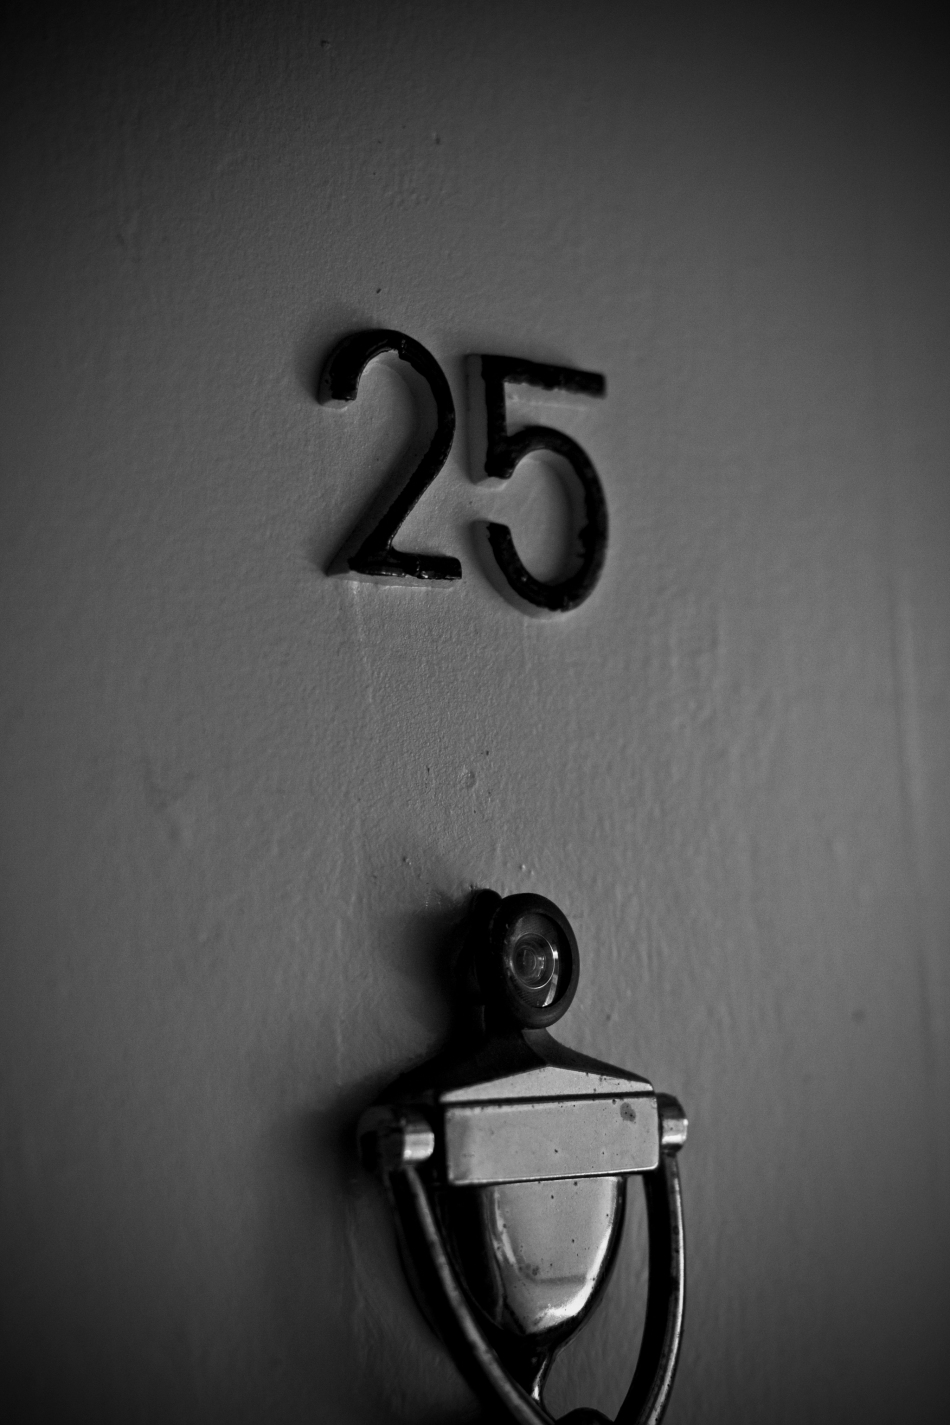 Address numbers reading 25 hung on a door with a door knocker and a peephole in black and white.